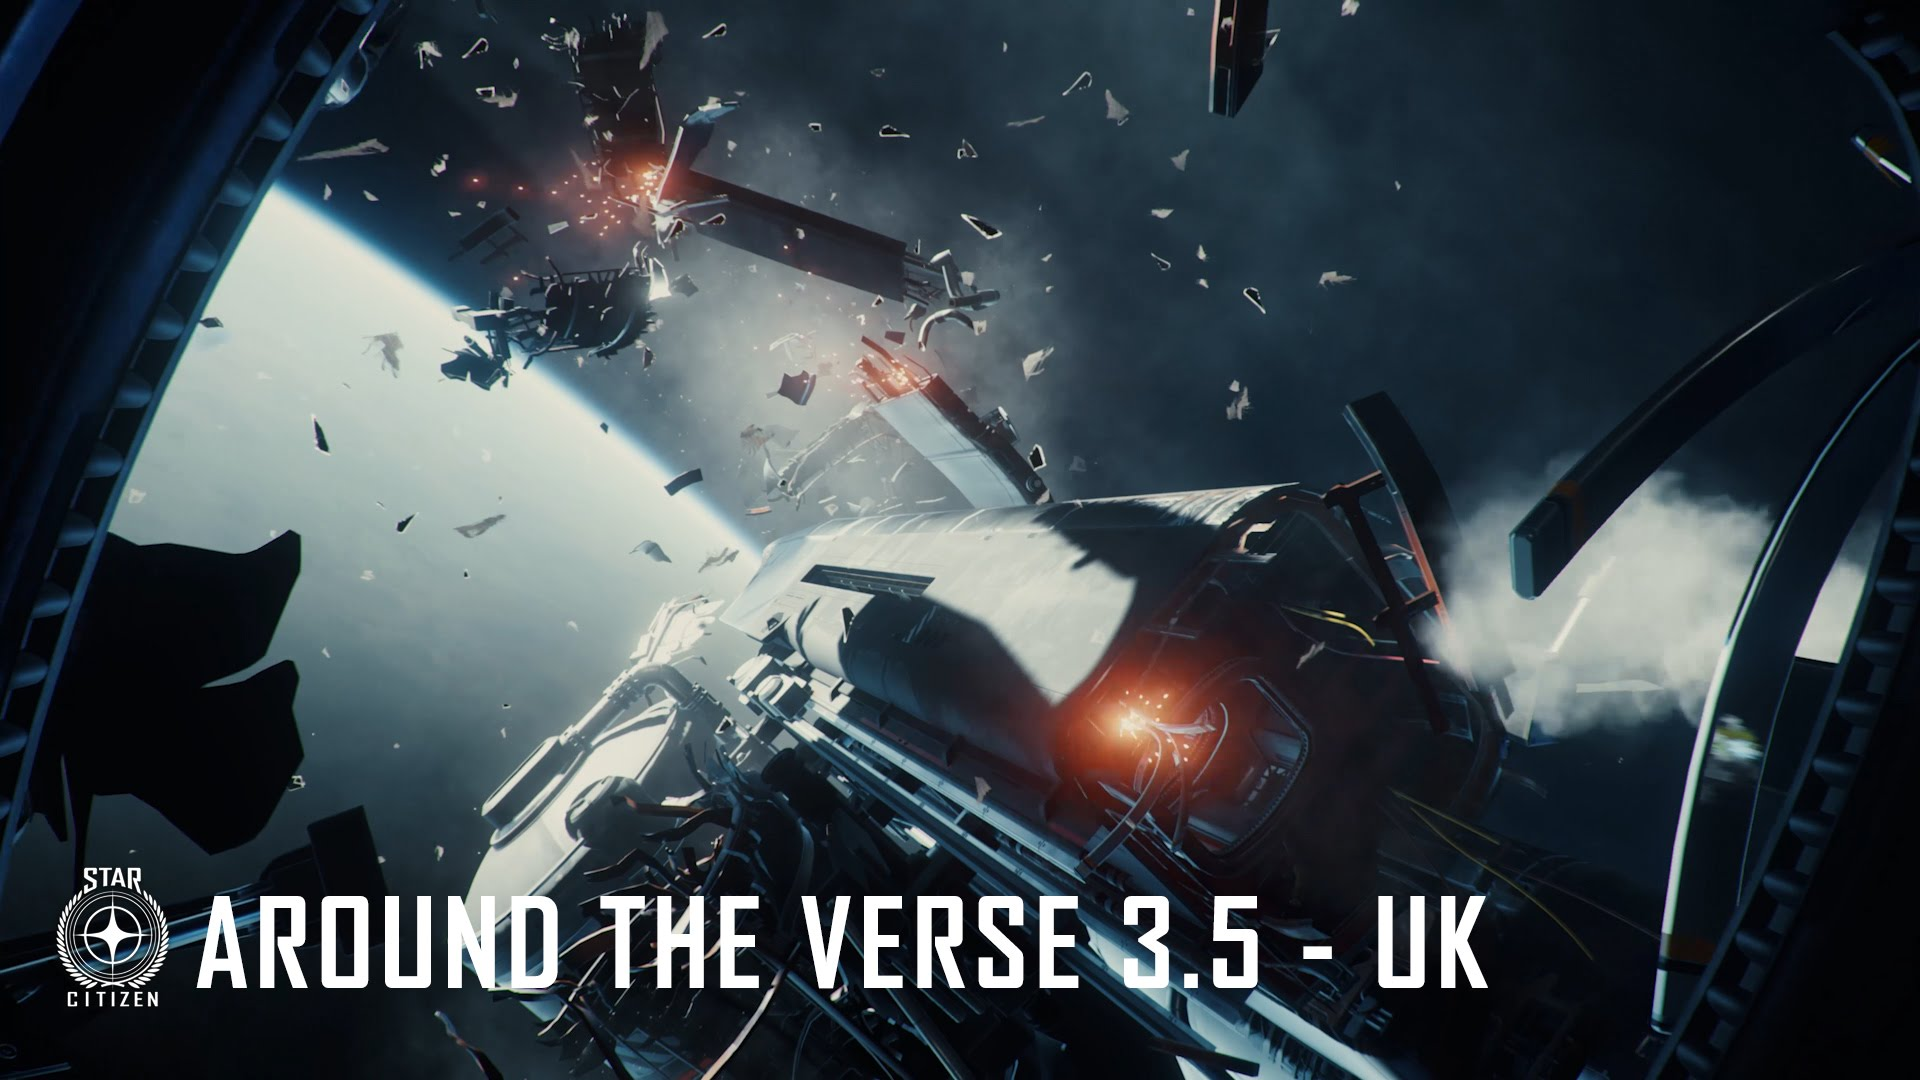 Star Citizen: Around The Verse 3.5 - UK